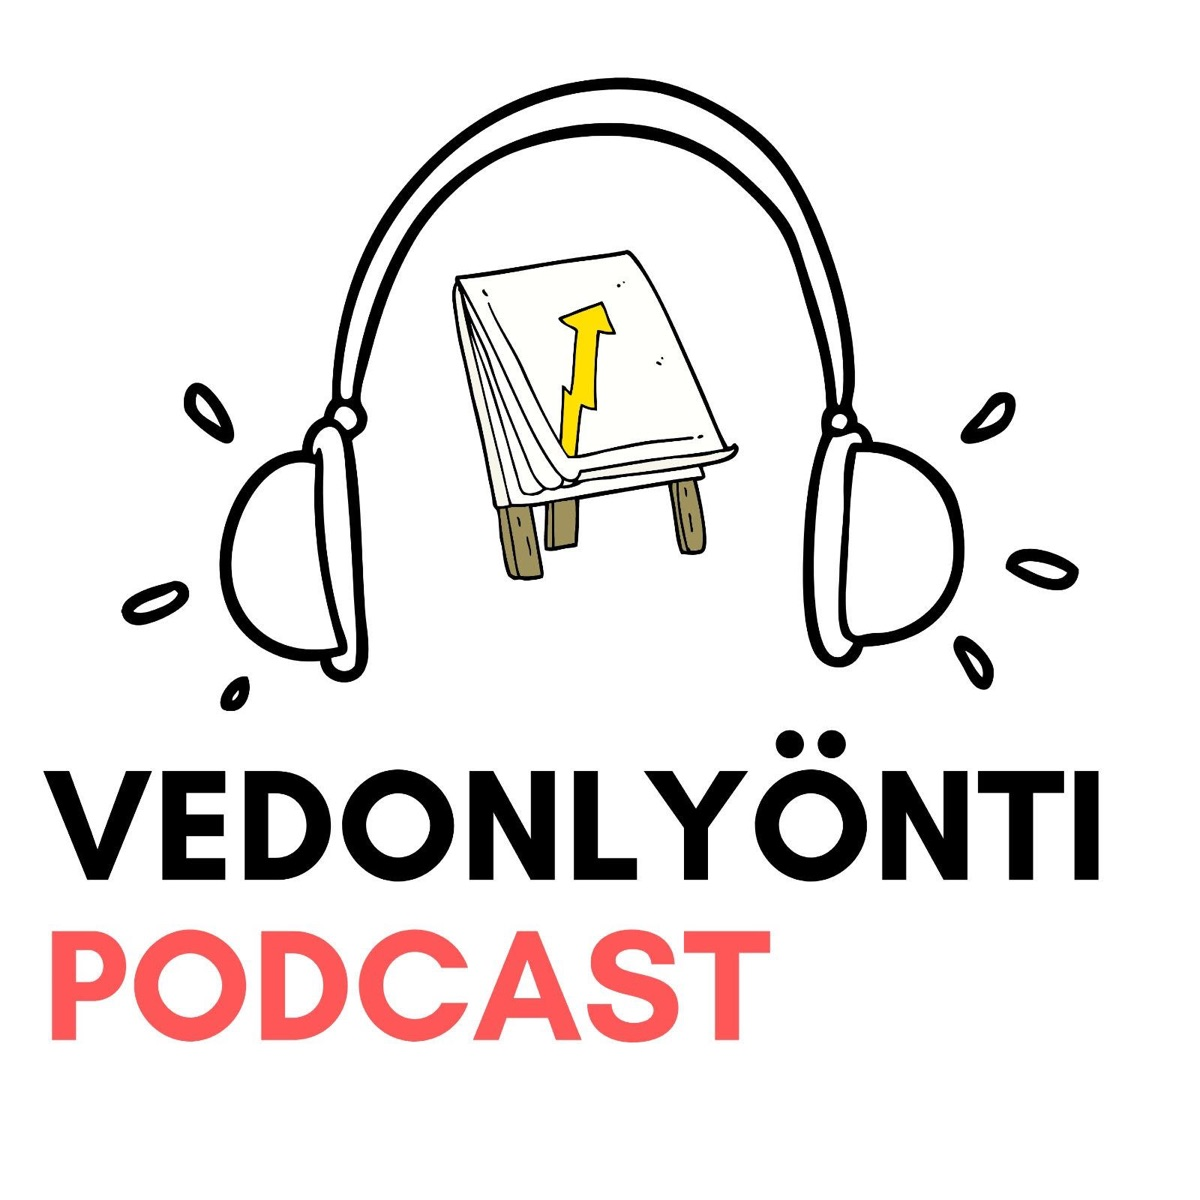 Vedonlyönti Podcast